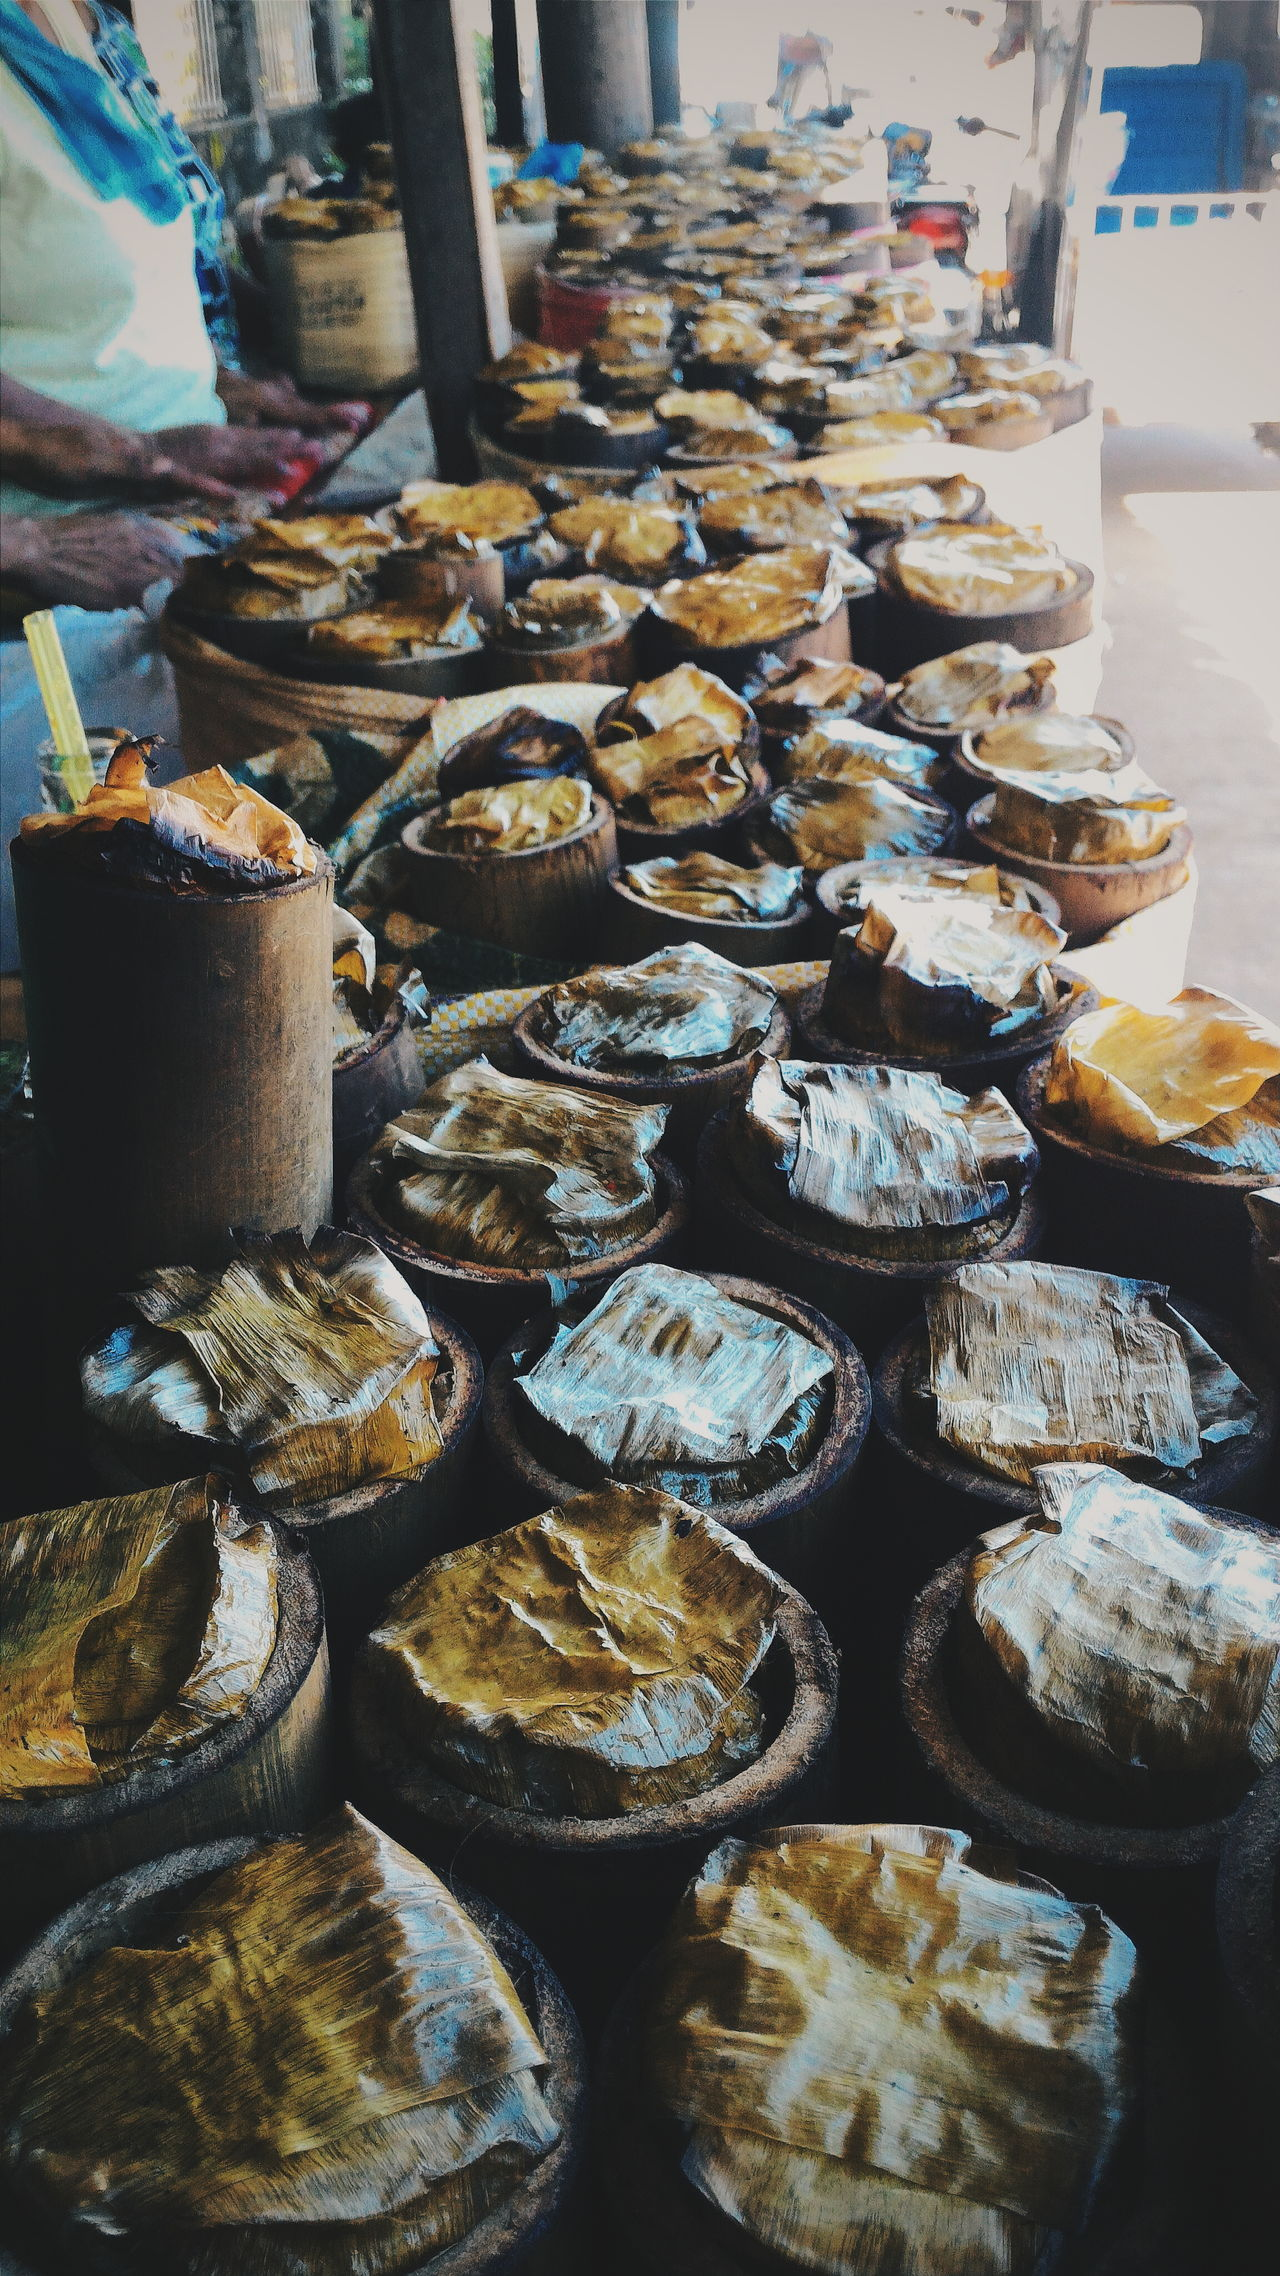 Authentic delicacy: Binungey EyeEm Gallery Eyeem Philippines EyeEmBestPics My Favorite Place Taking Photos Adventurer Adventure Eye4photography  Eye4photography  EyeEm Best Shots OpenEdit Patterns & Textures Food Collection Repetition Arrangement In A Row Ricecake